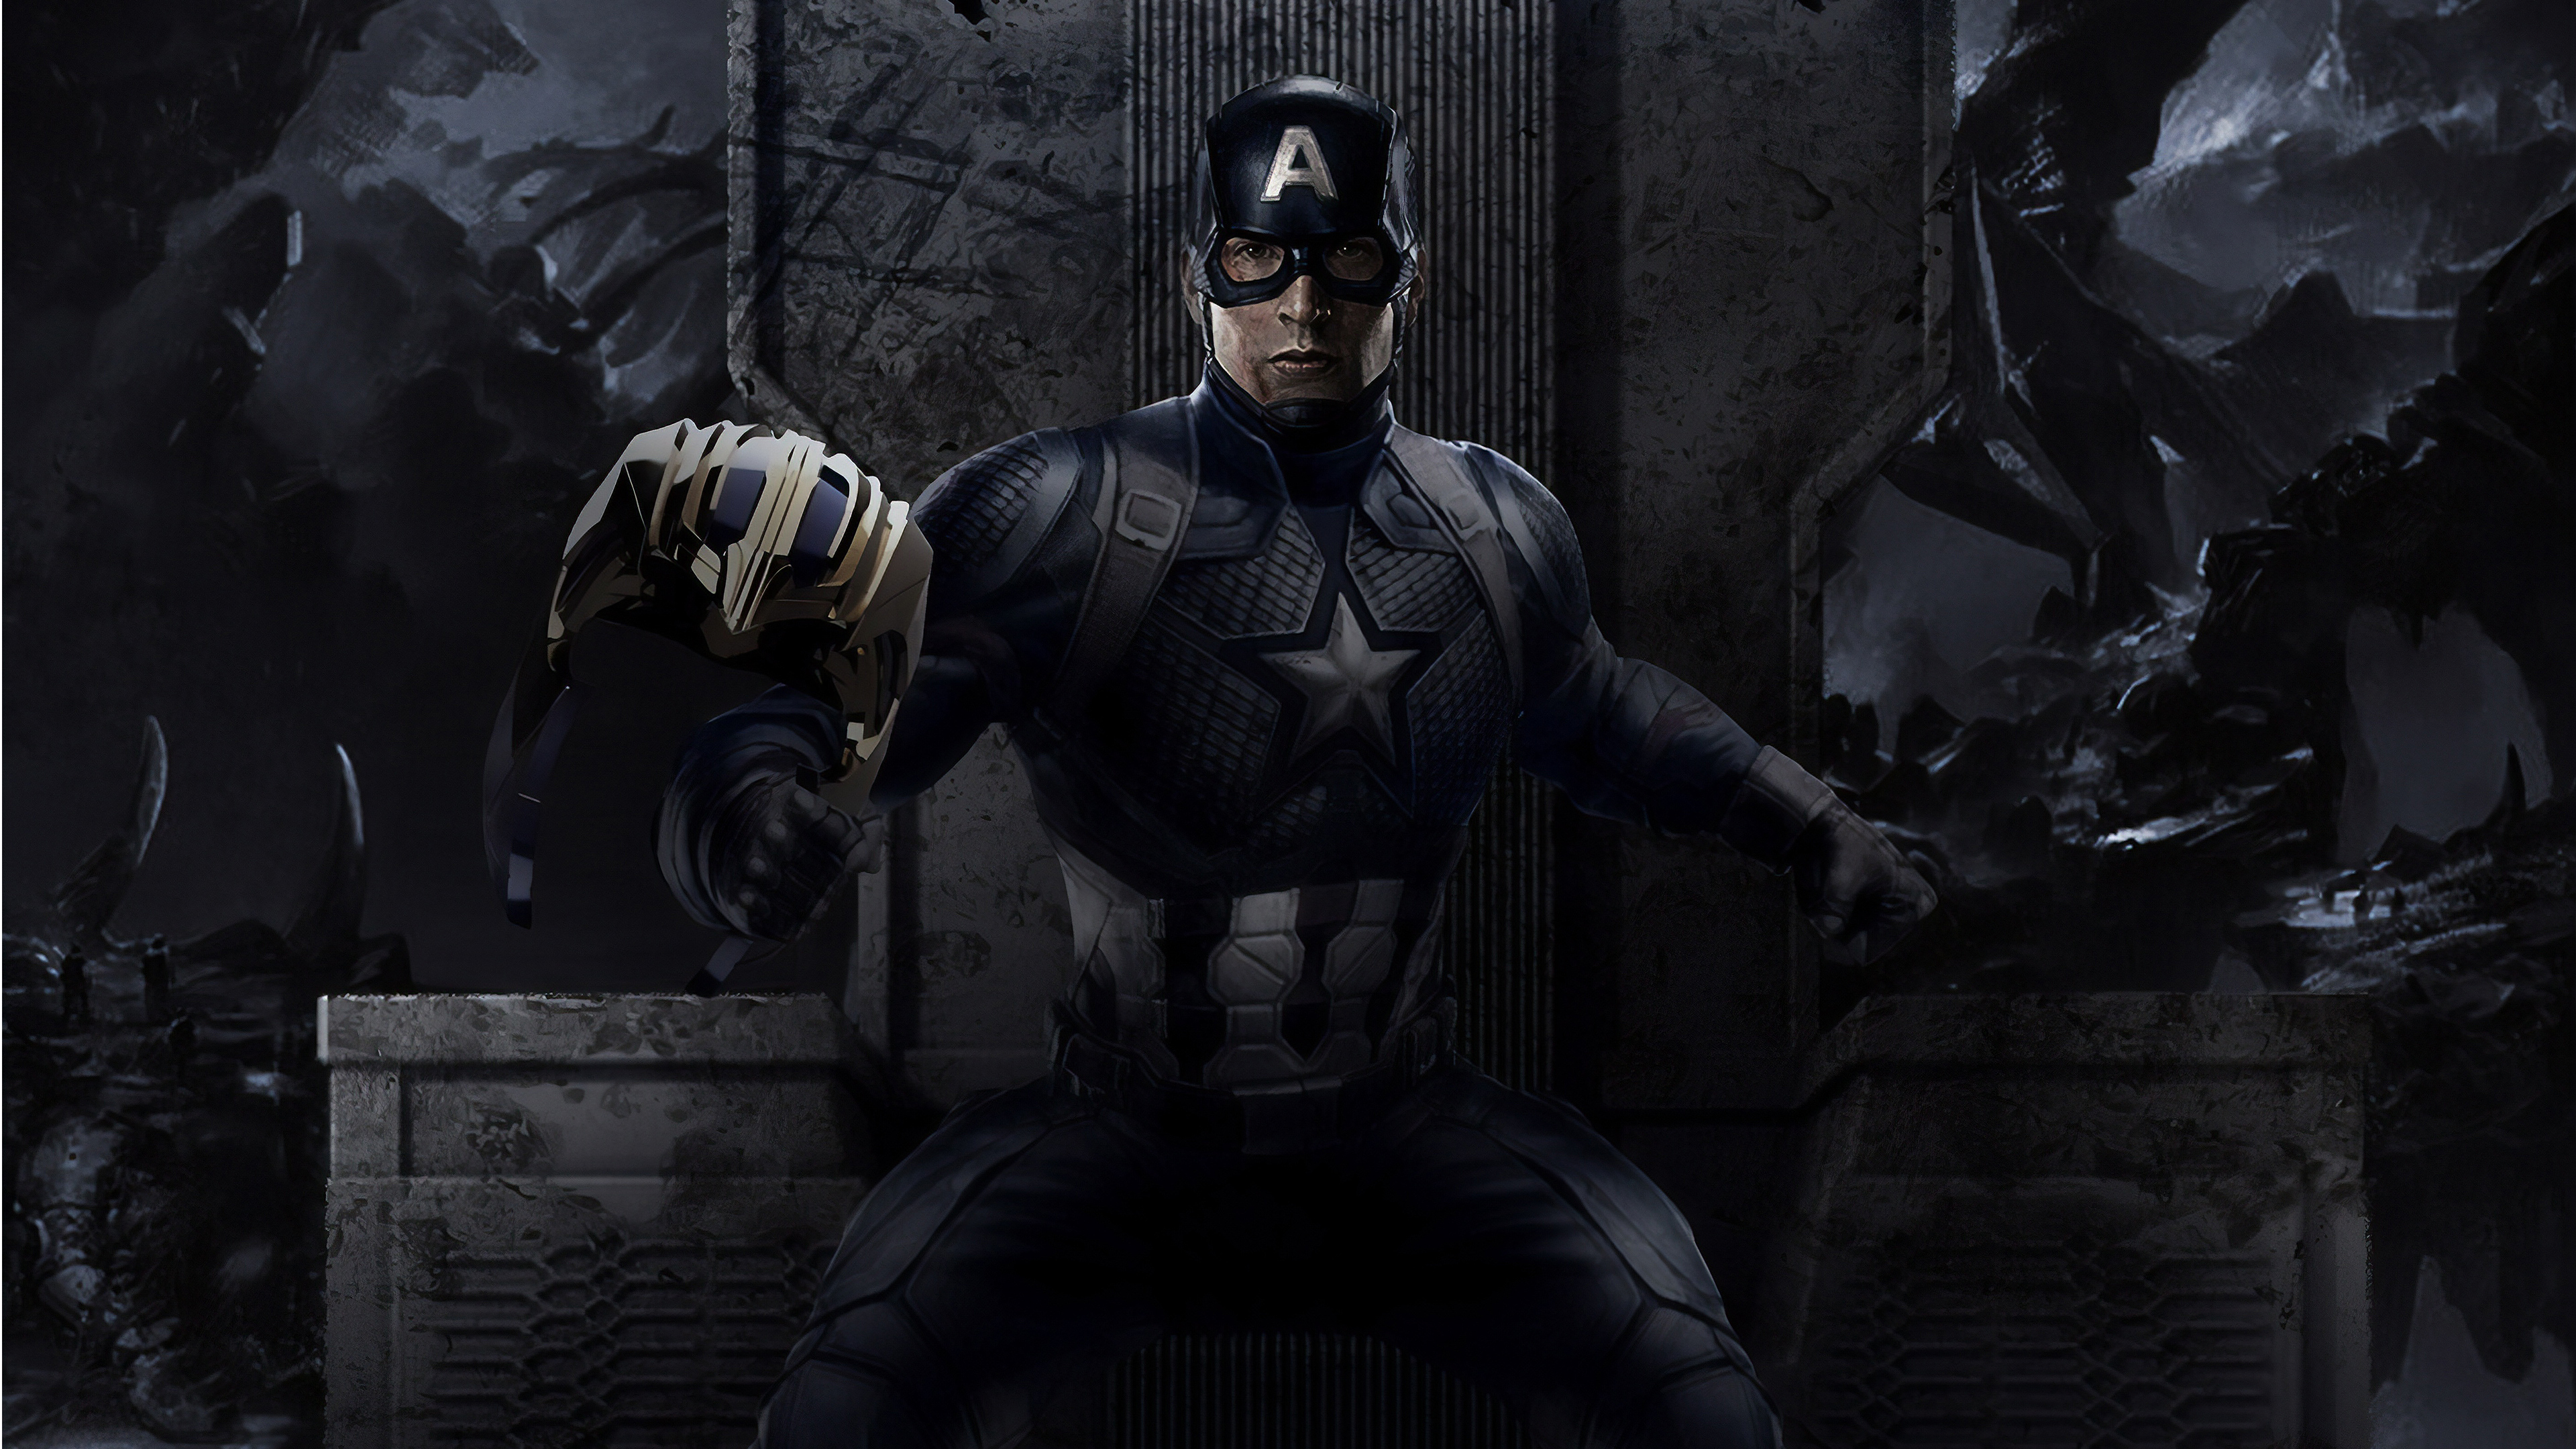 captain america endgame 1562105351 - Captain America Endgame - superheroes wallpapers, hd-wallpapers, digital art wallpapers, captain america wallpapers, behance wallpapers, artwork wallpapers, 4k-wallpapers